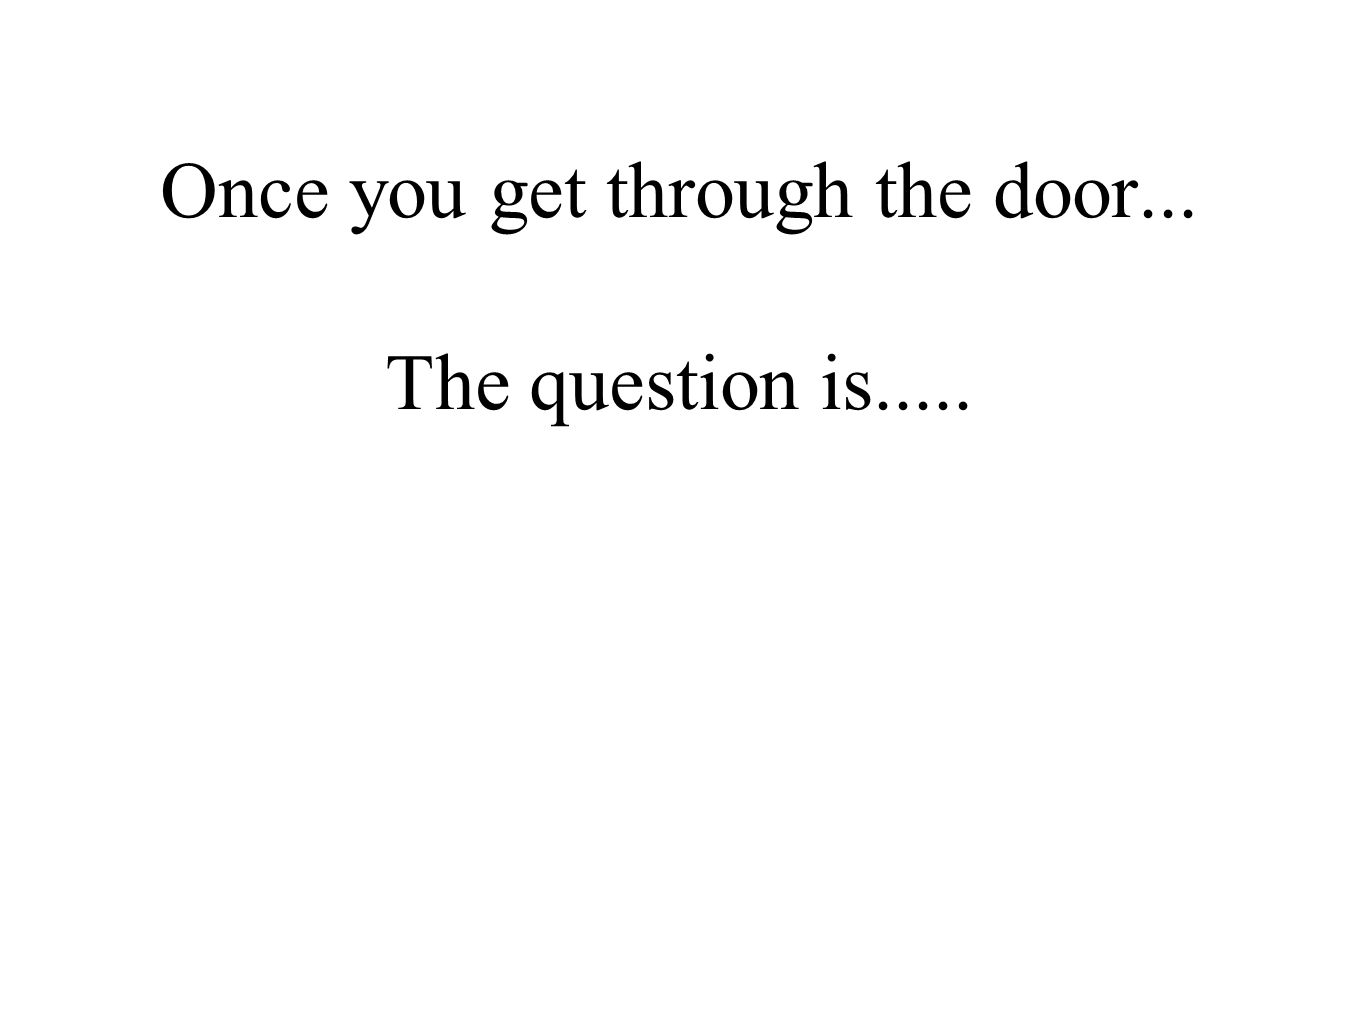 Once you get through the door... The question is.....